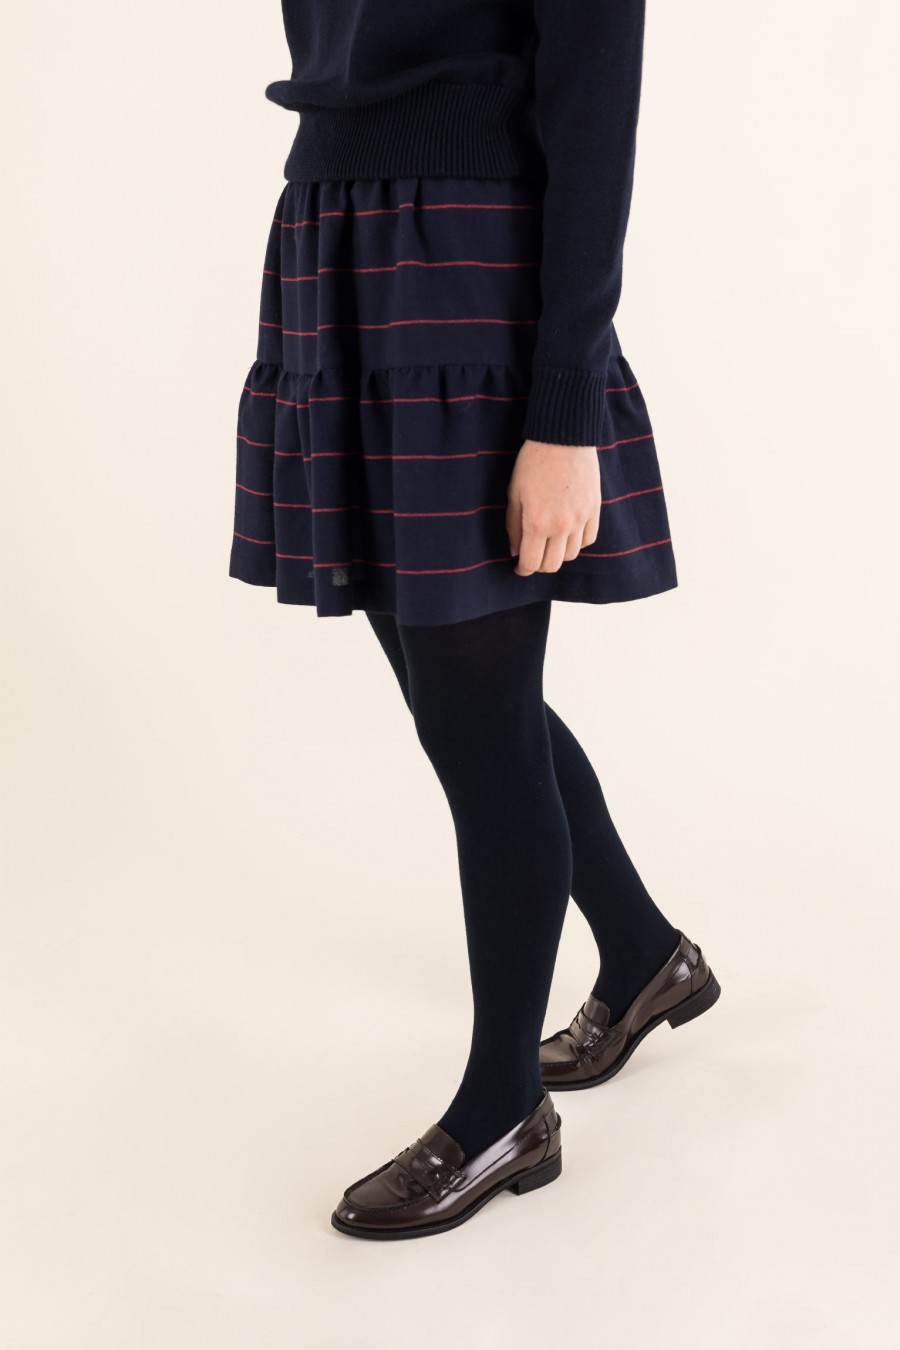 Blue skirt with red stripes